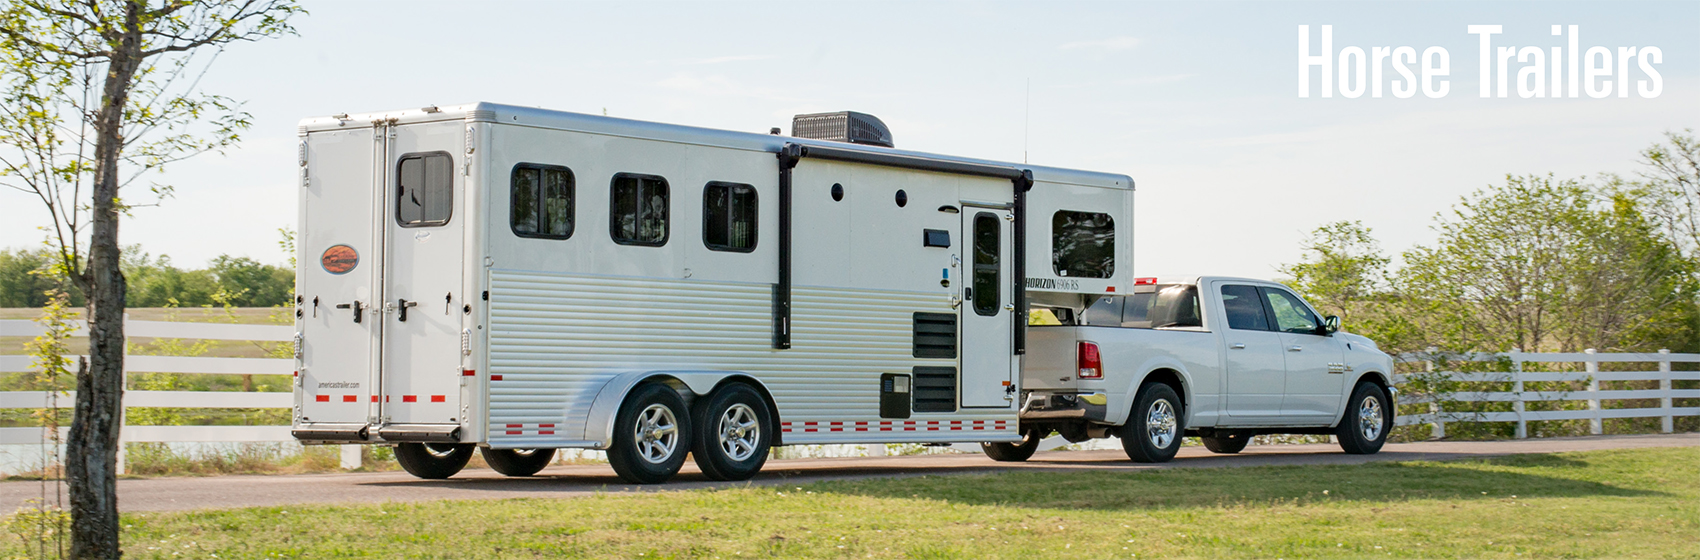 Sundowner trailer corporation welcome to sundowner as the industry leading horse trailer cheapraybanclubmaster Gallery